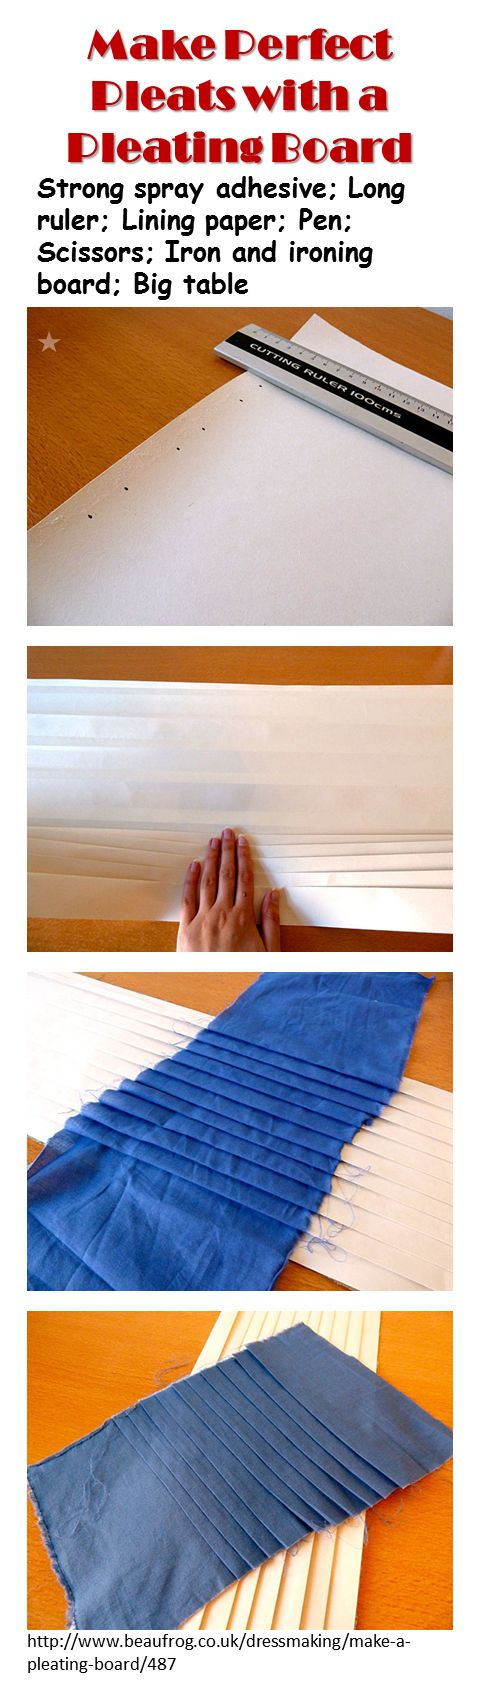 Pleating Board - instead of lining paper use a mid-weight interfacing, non-fuseable. Use a credit card etc to make sure fabric goes between the pleats. http://www.beaufrog.co.uk/dressmaking/make-a-pleating-board/487